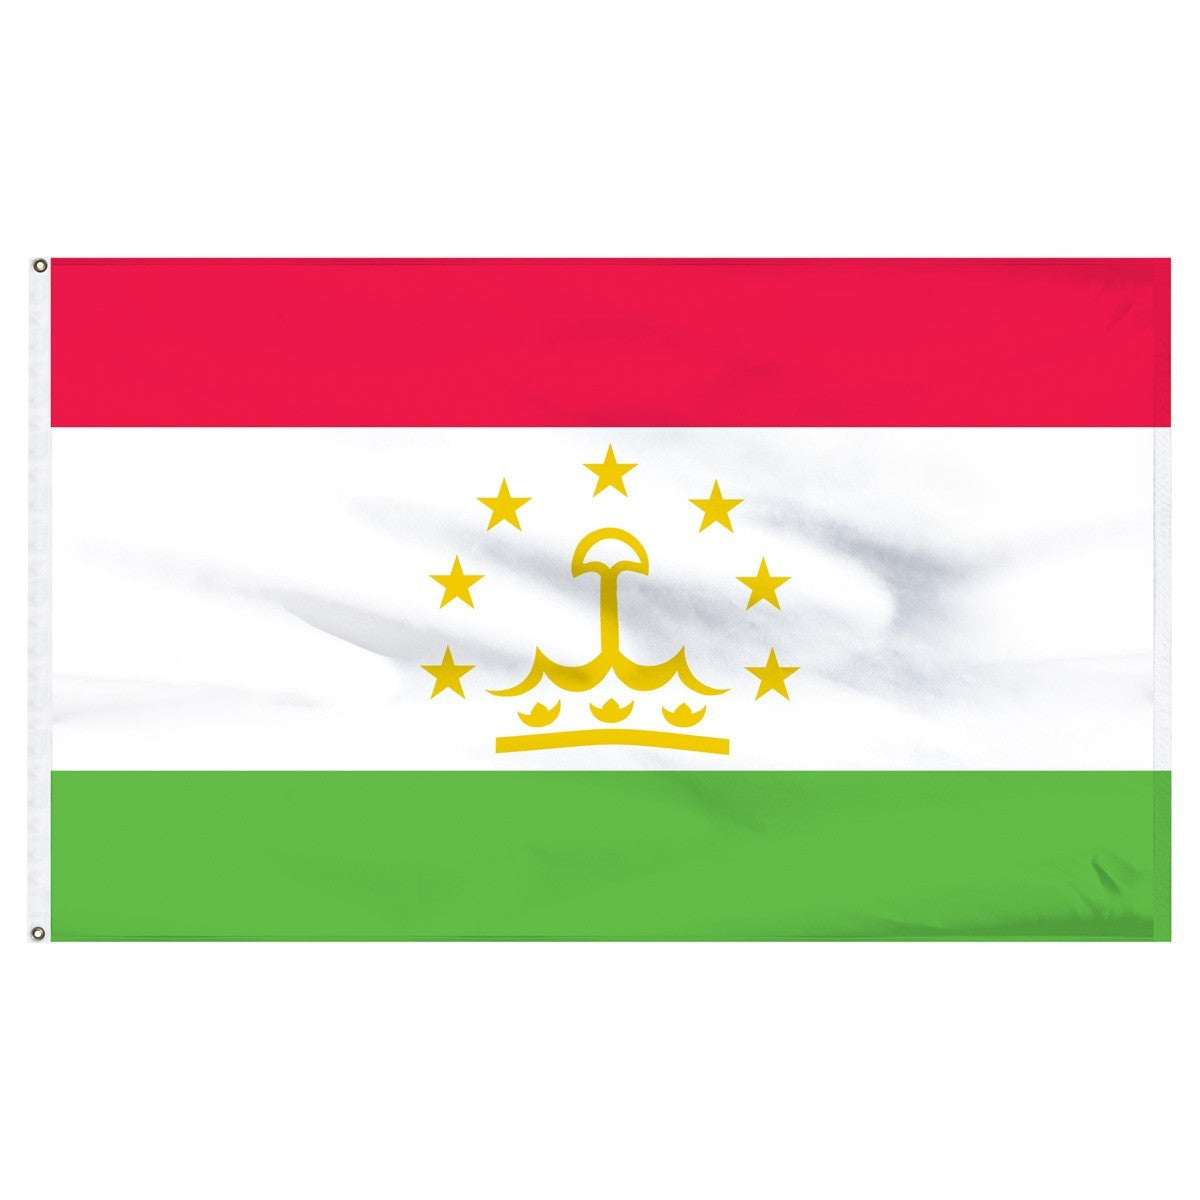 Tajikistan 4' x 6' Outdoor Nylon Flag